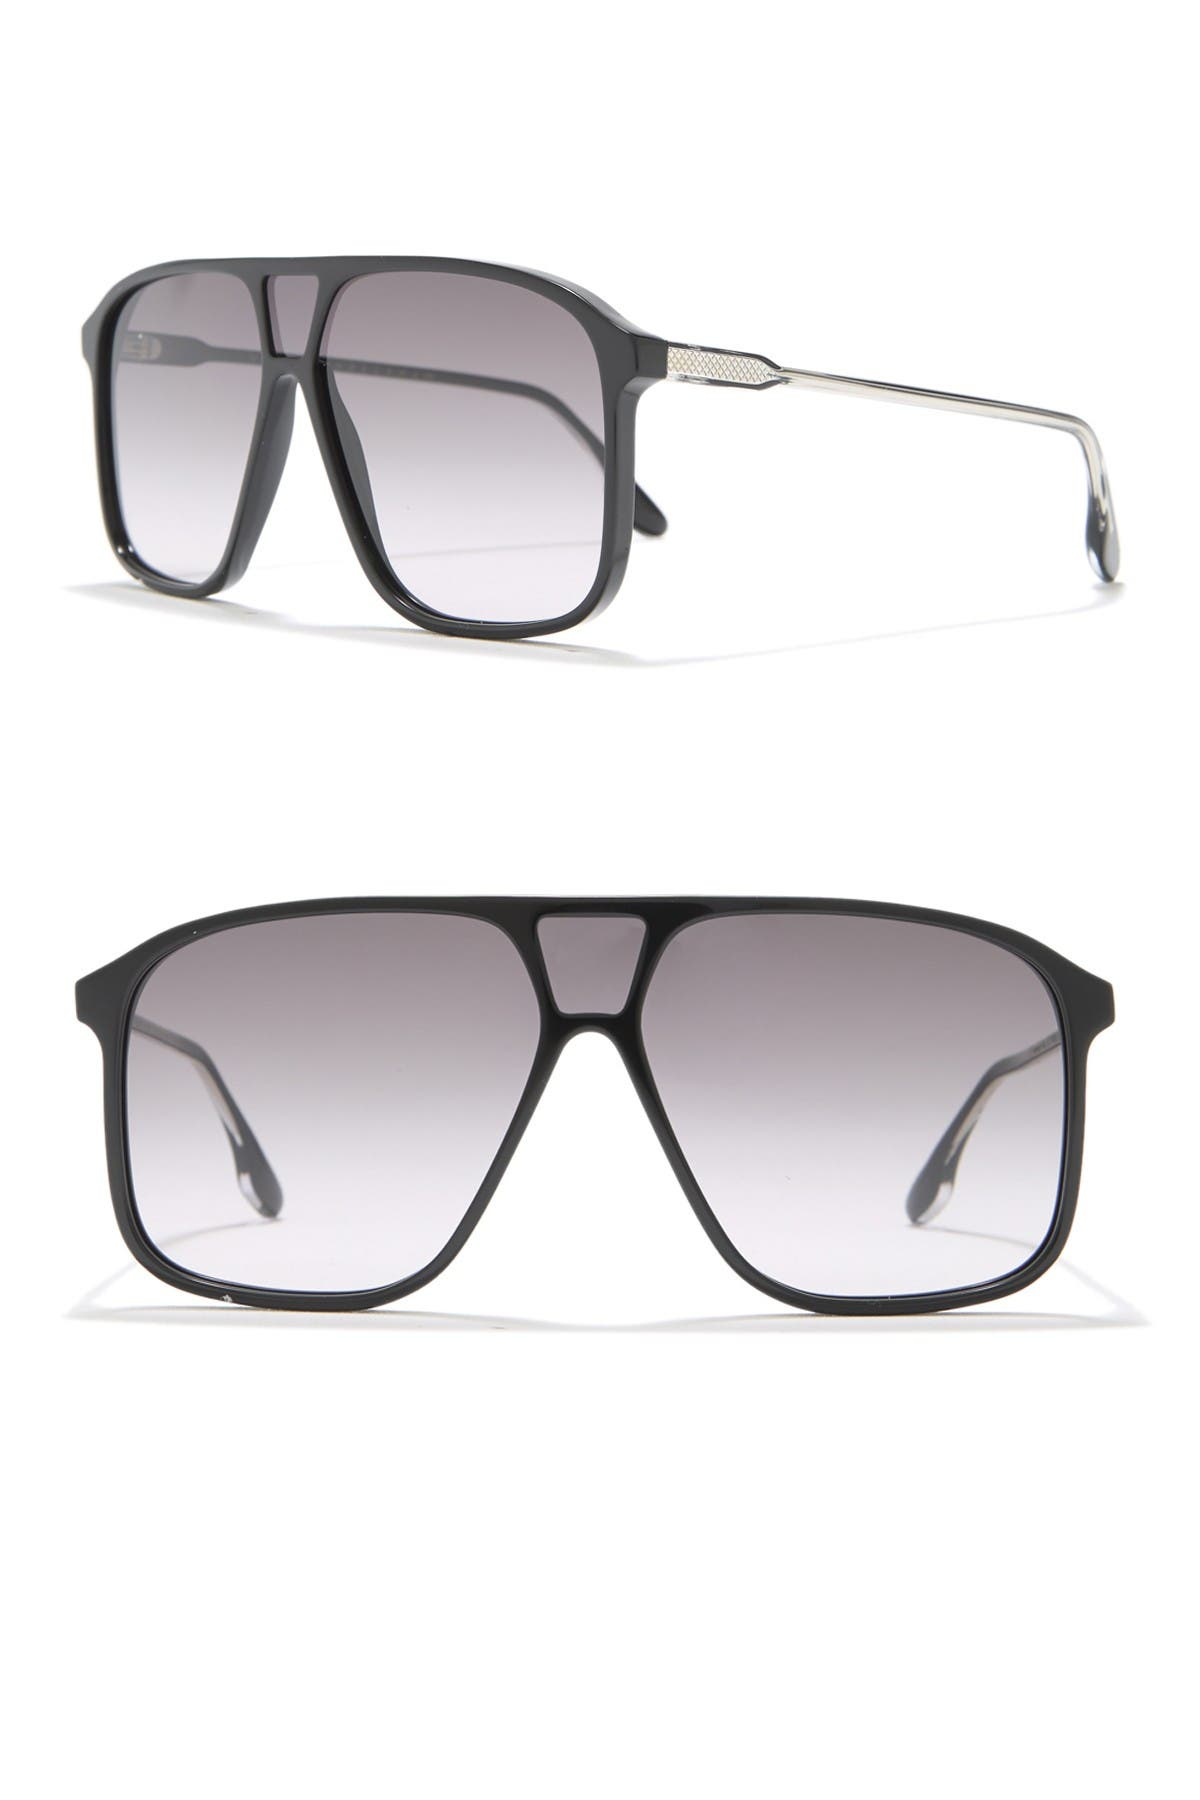 Image of Victoria Beckham 60mm Shield Sunglasses